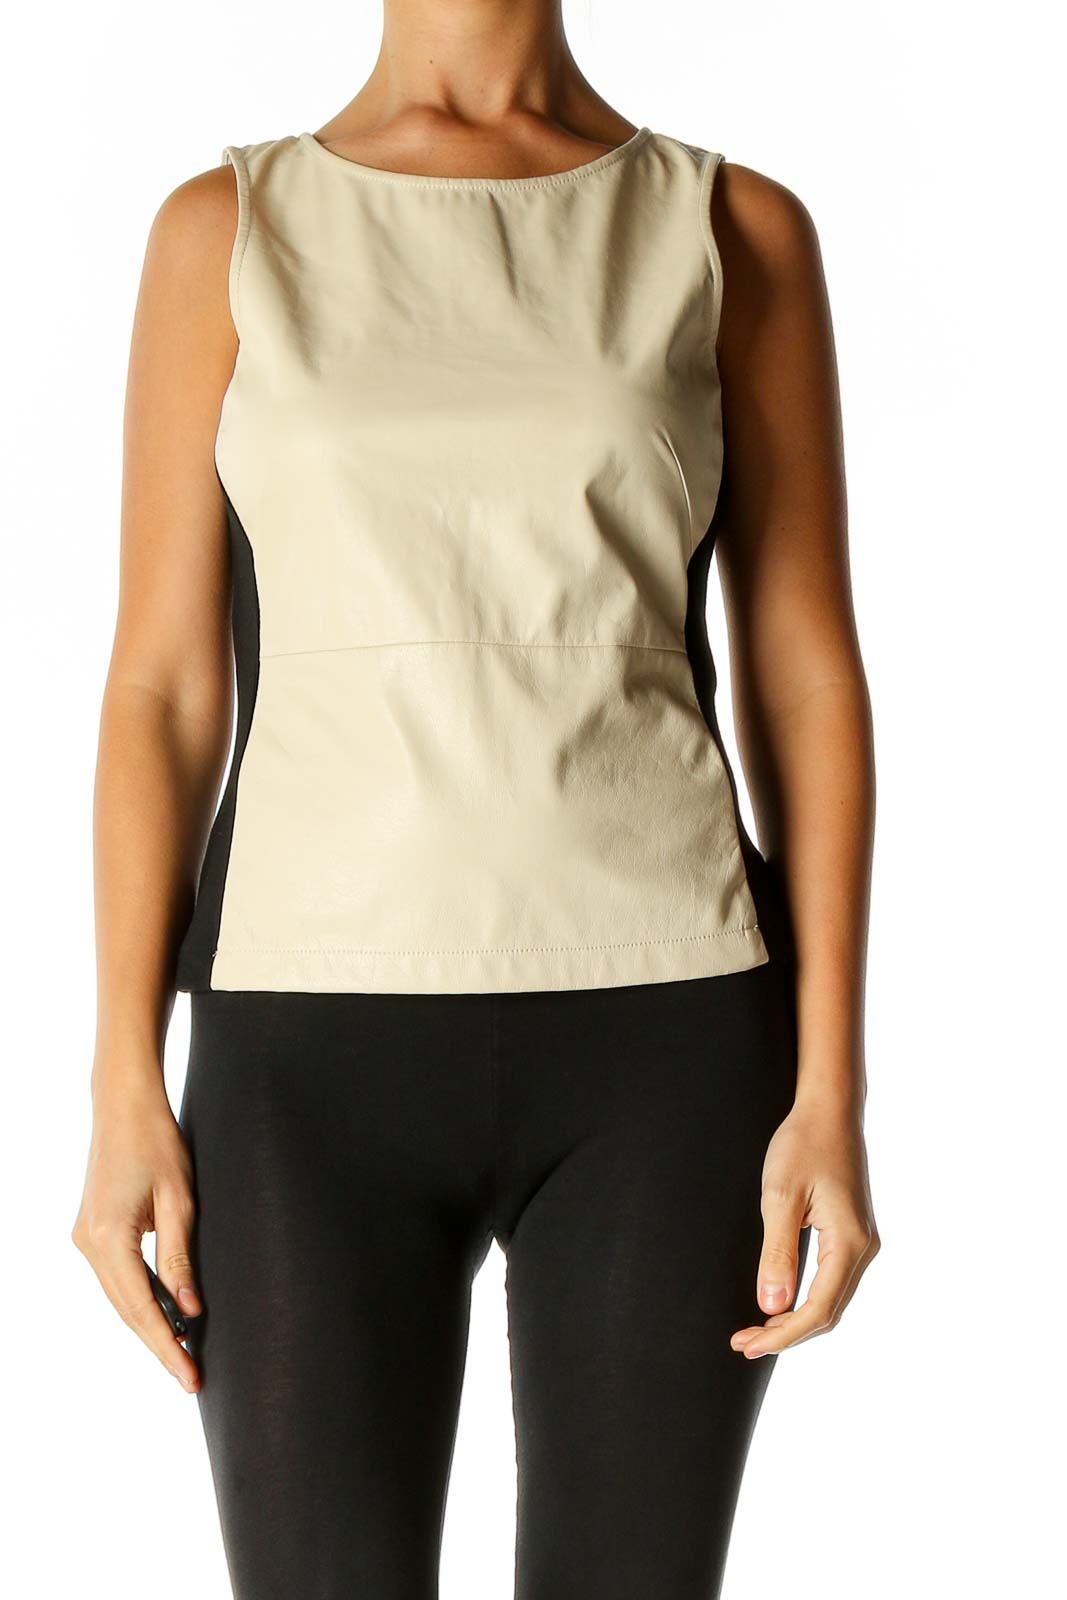 Beige Solid Chic Blouse Front